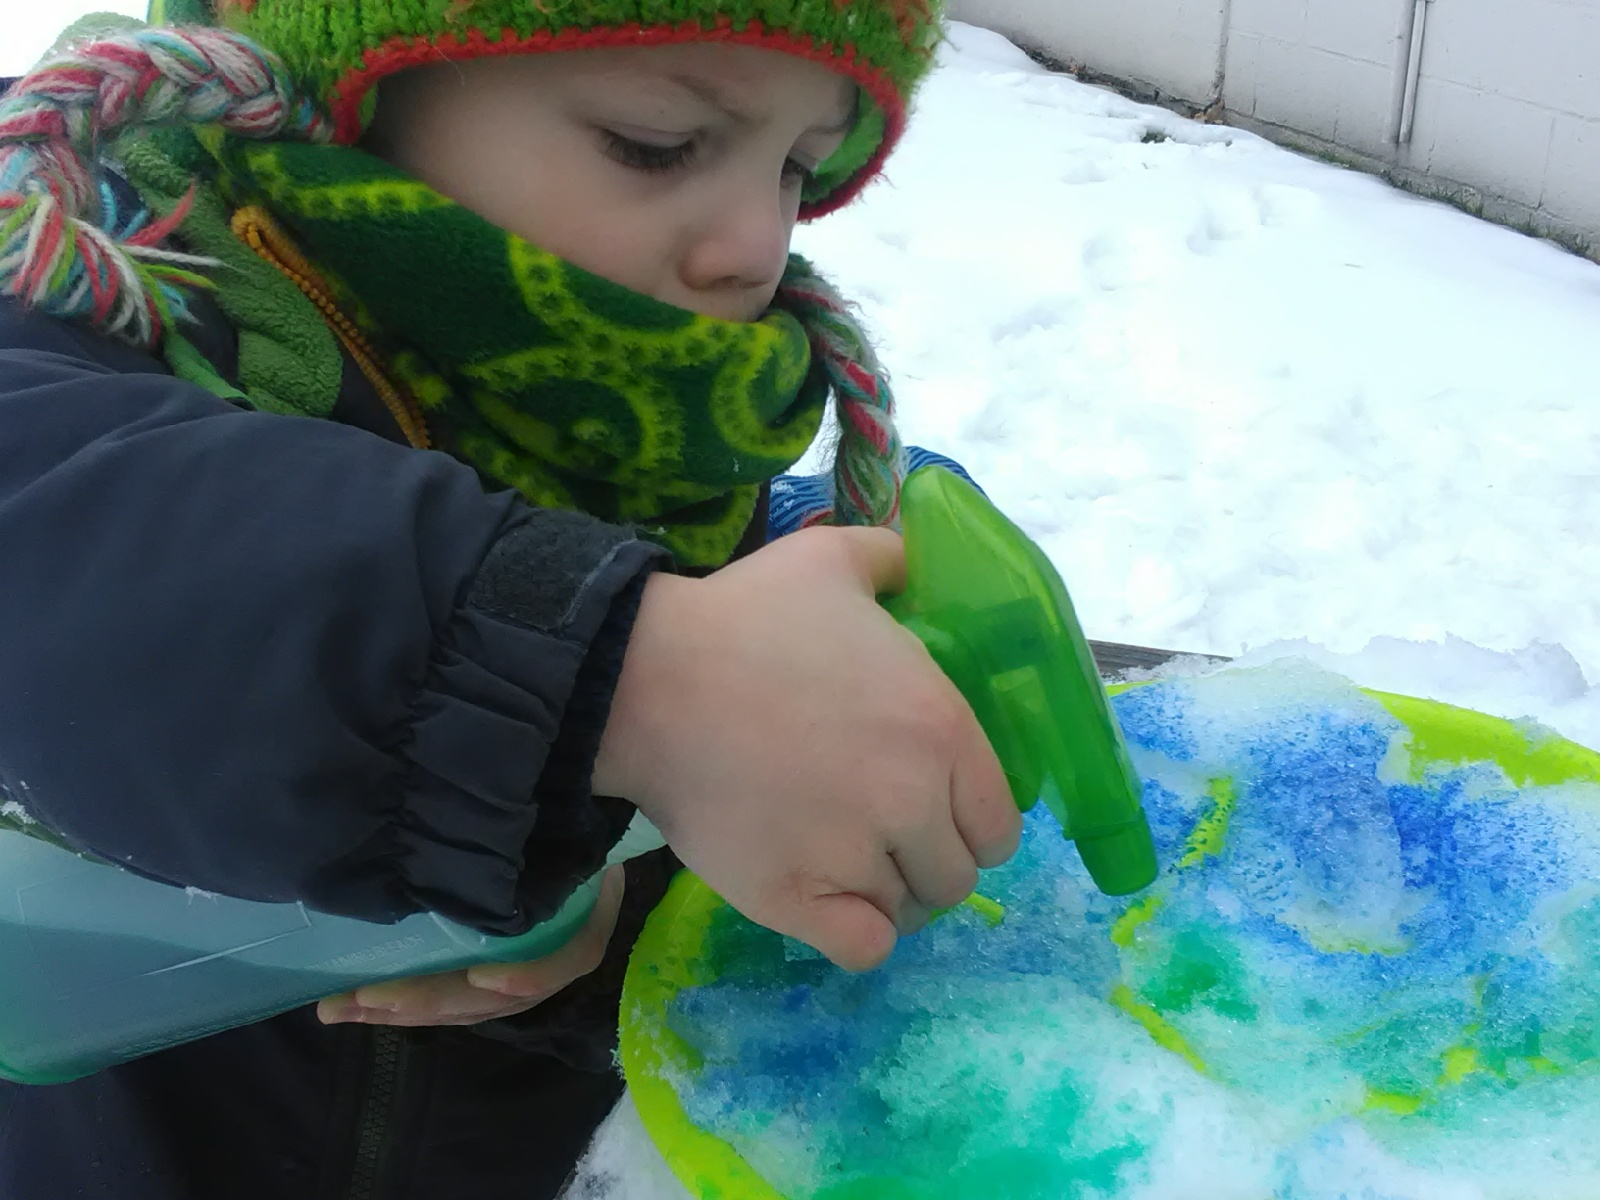 Small child spraying snow with colored water.